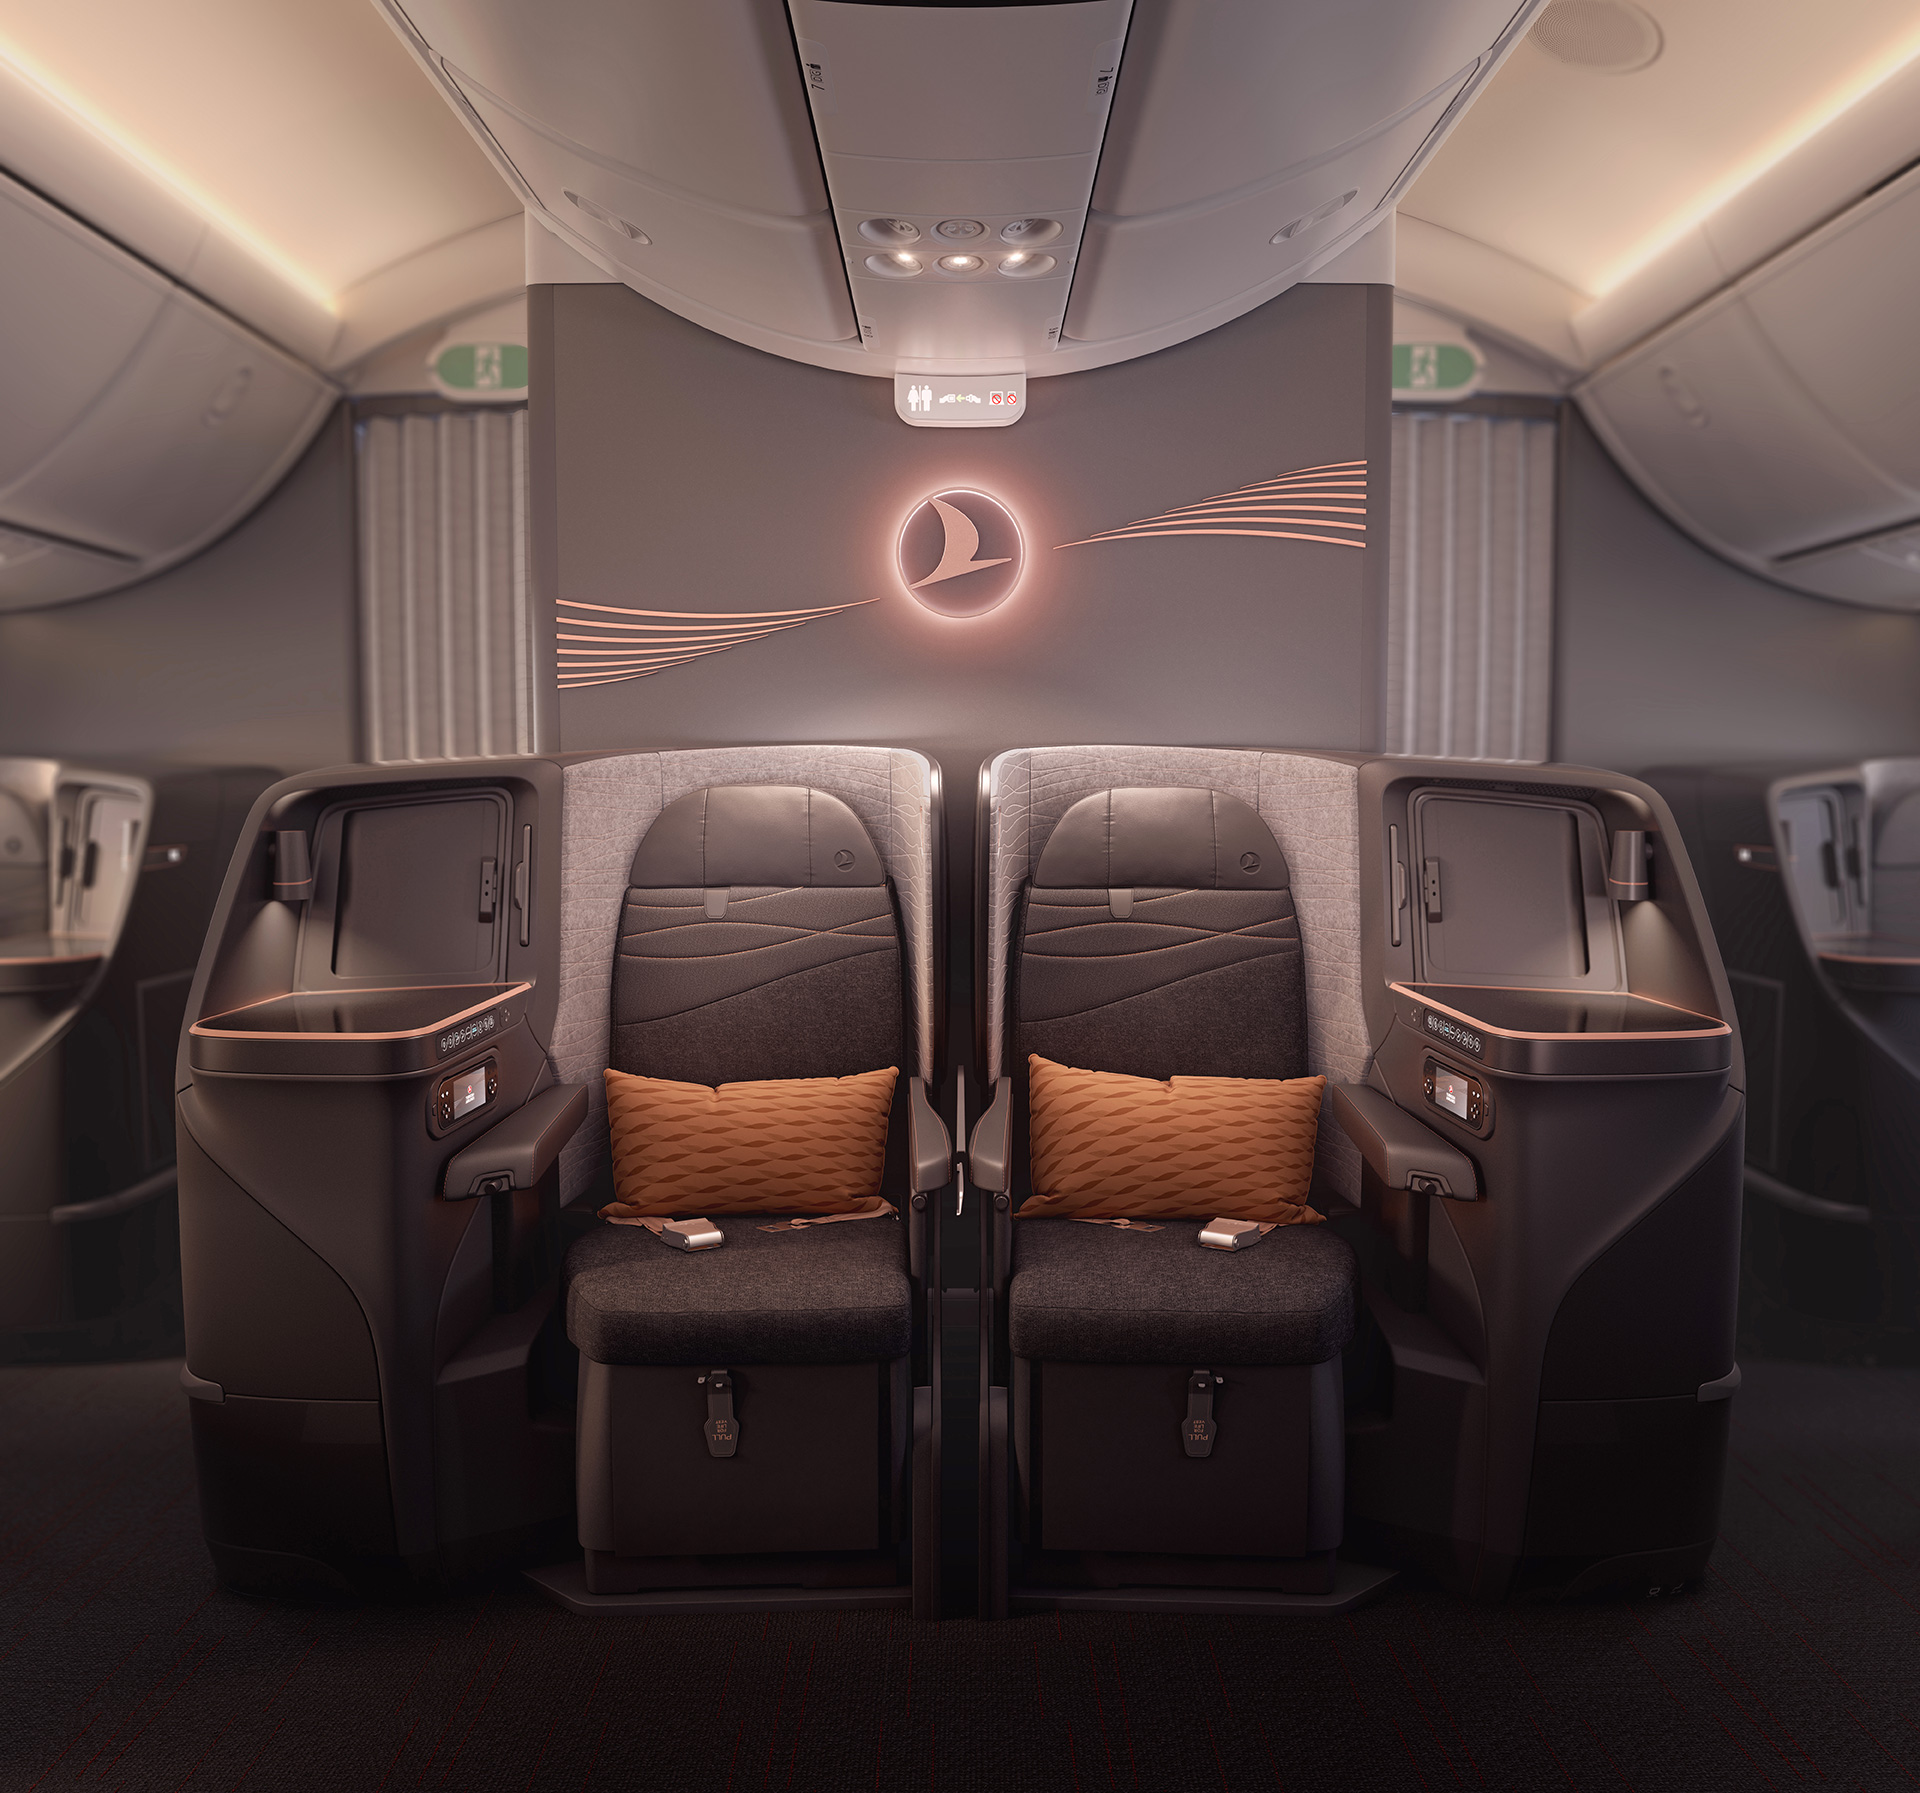 Cabin interior design for Turkish Airlines by PriestmanGoode | Paul Priestman | PriestmanGoode | STIRworld